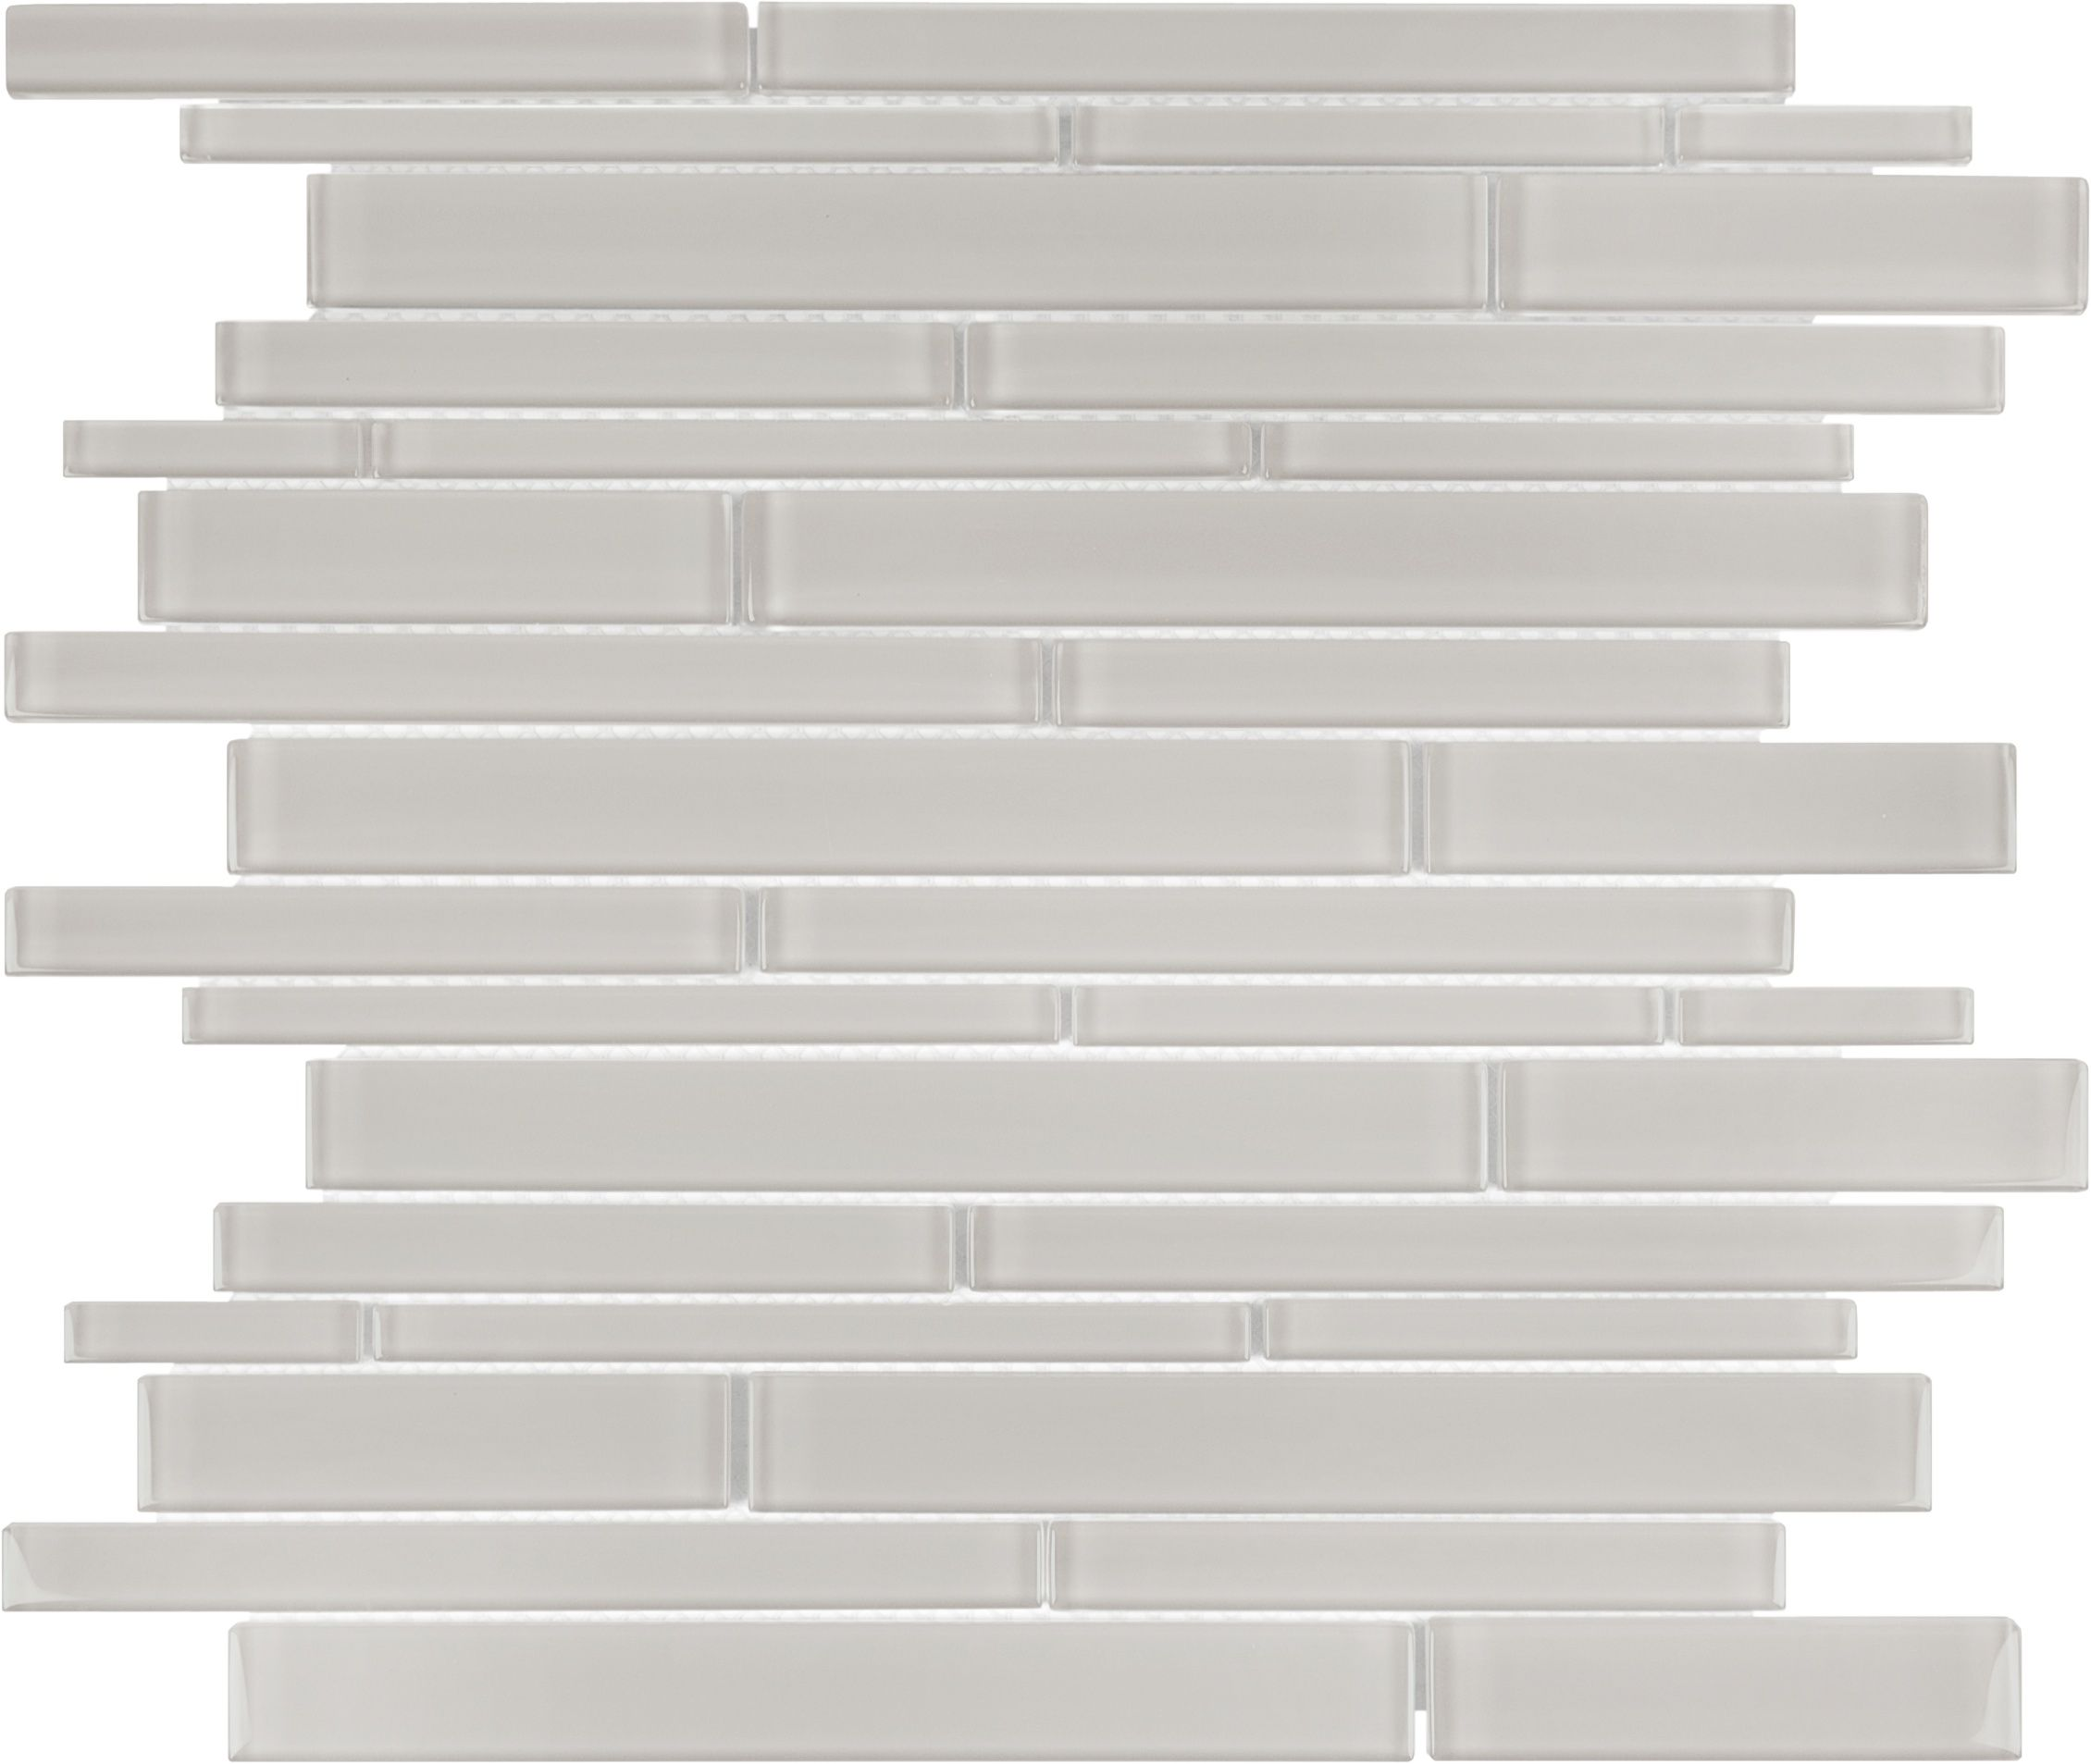 Solid Glass Backsplash Kitchen: 35-058 Mist Solid Glass Random Strip Mosaic